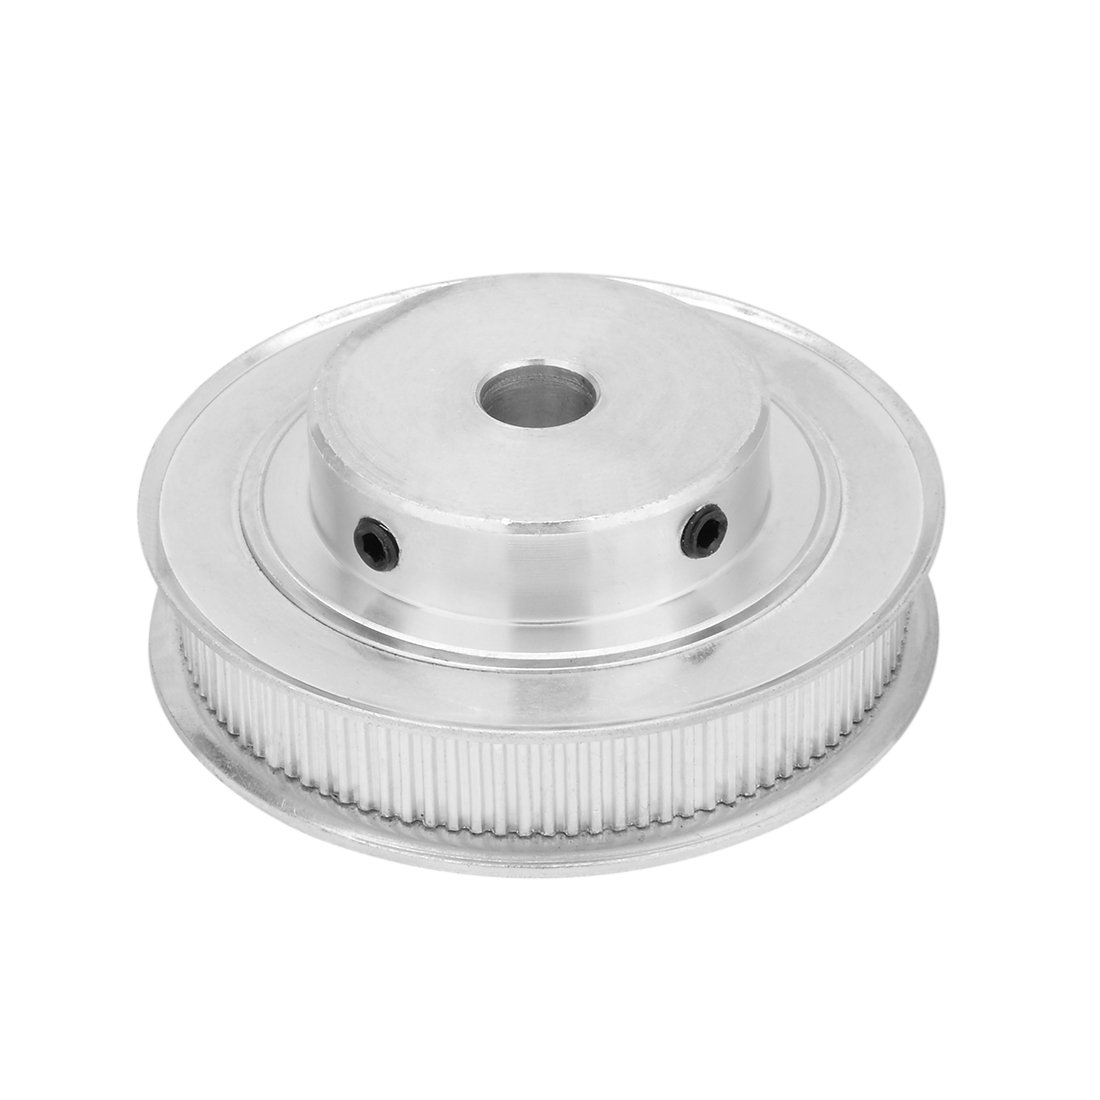 uxcell Aluminum MXL 100 Teeth 10mm Bore Timing Belt Pulley Synchronous Wheel for 10mm Belt 3D Printer CNC